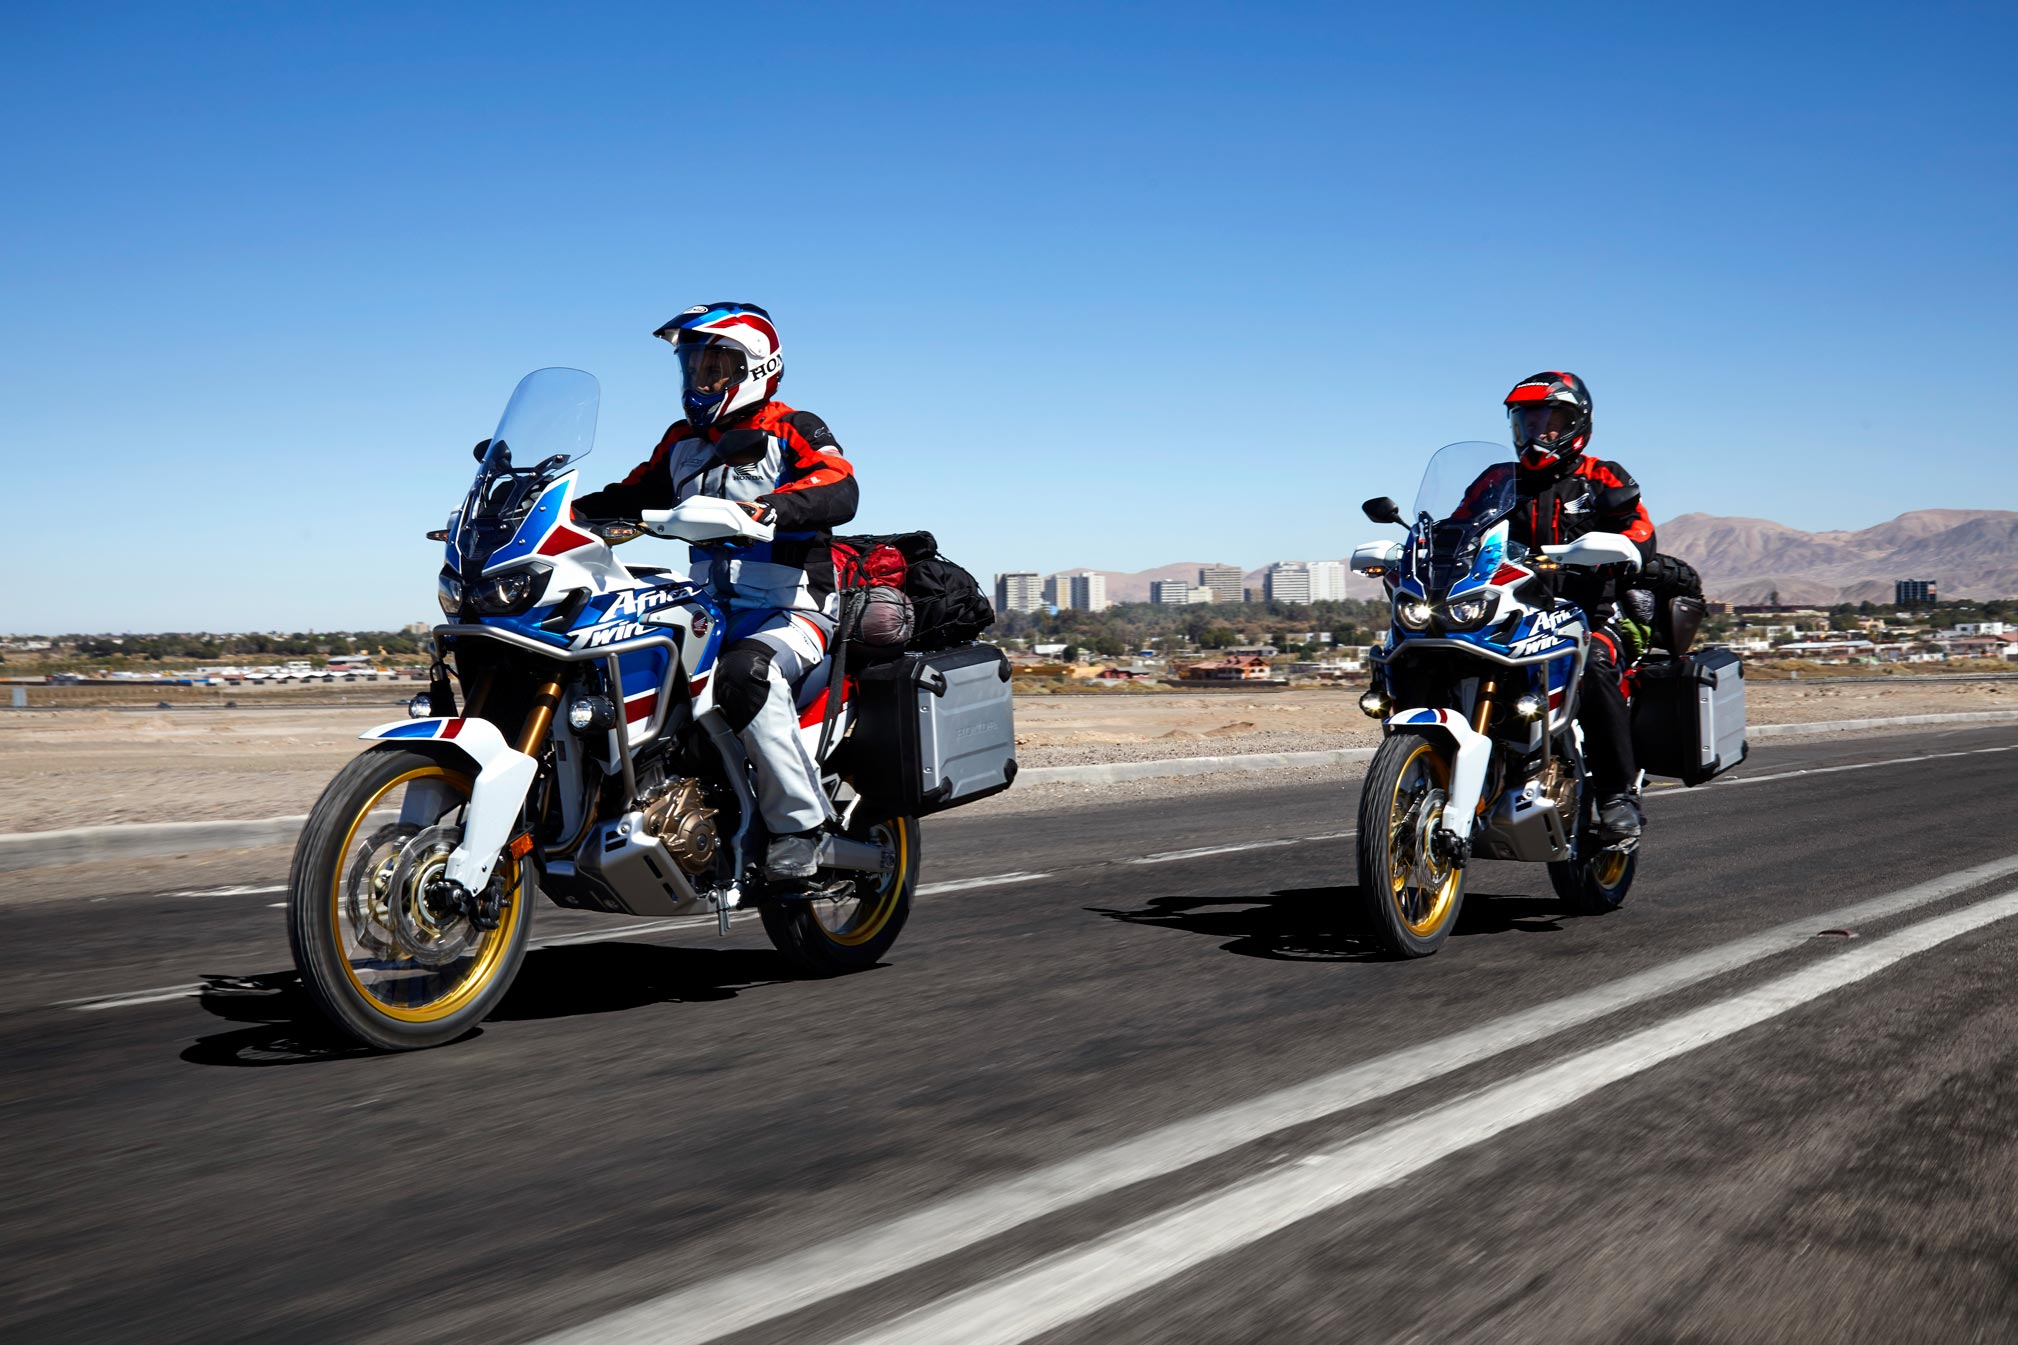 2018 honda africa twin adventure sports crf1000l2 review totalmotorcycle. Black Bedroom Furniture Sets. Home Design Ideas